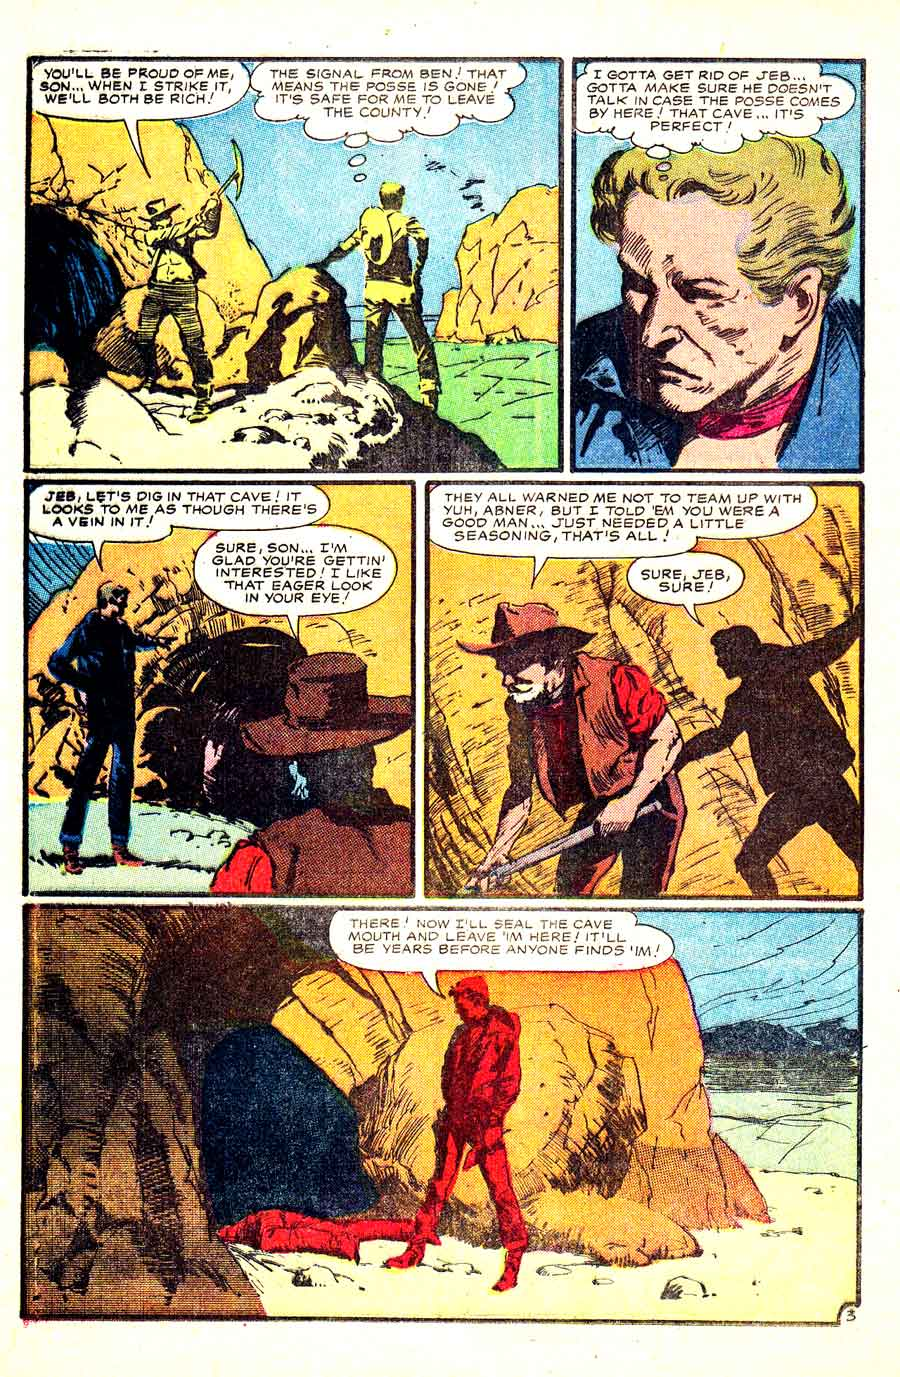 Al Williamson golden age 1950s atlas western comic book page for Kid Colt Outlaw #59